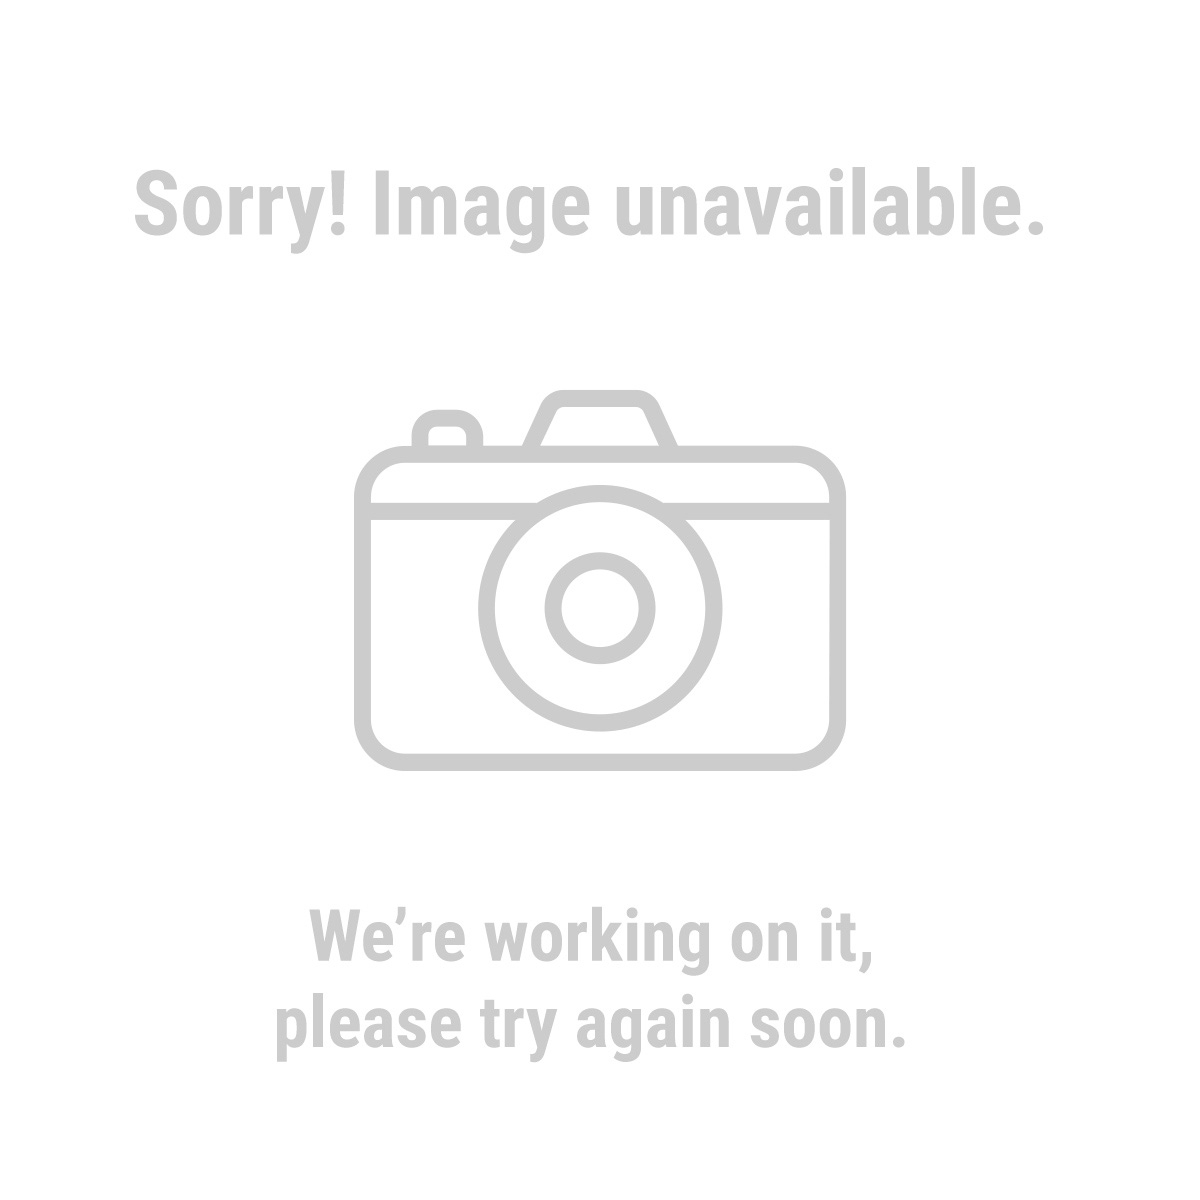 Pittsburgh Professional 99739 5 Piece Upholstery and Trim Tool Set